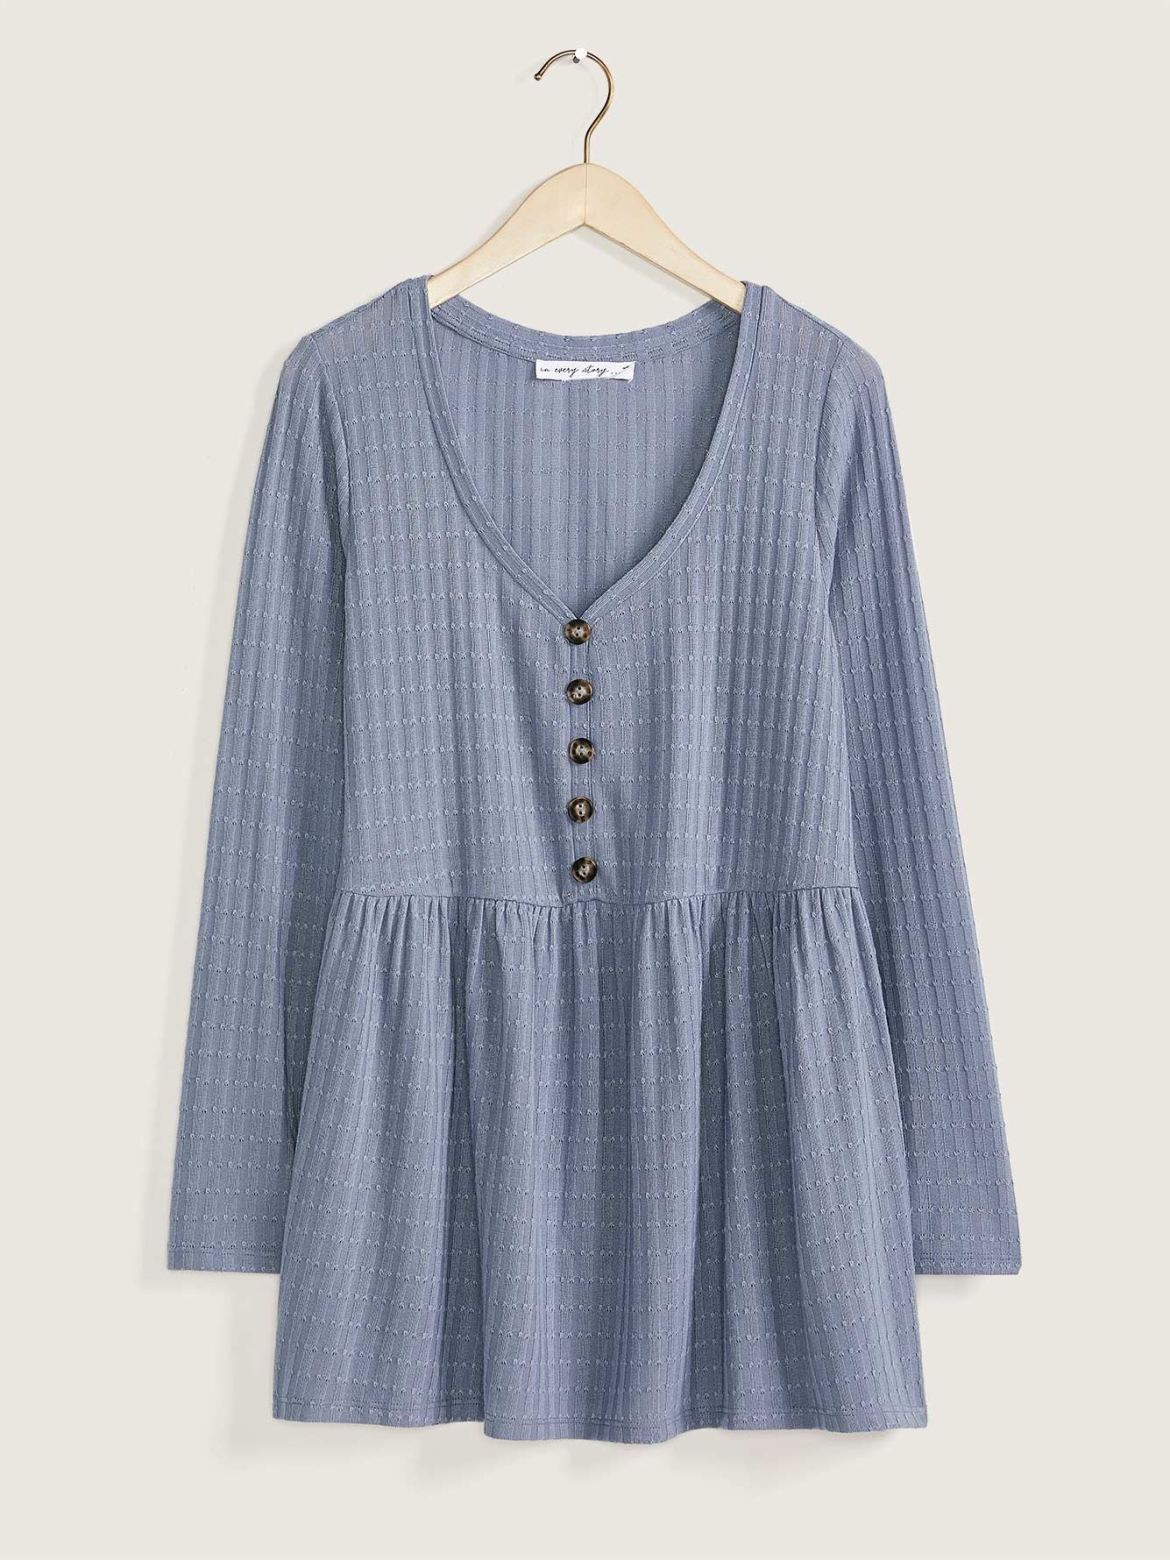 Pointelle Knit Babydoll Top - In Every Story